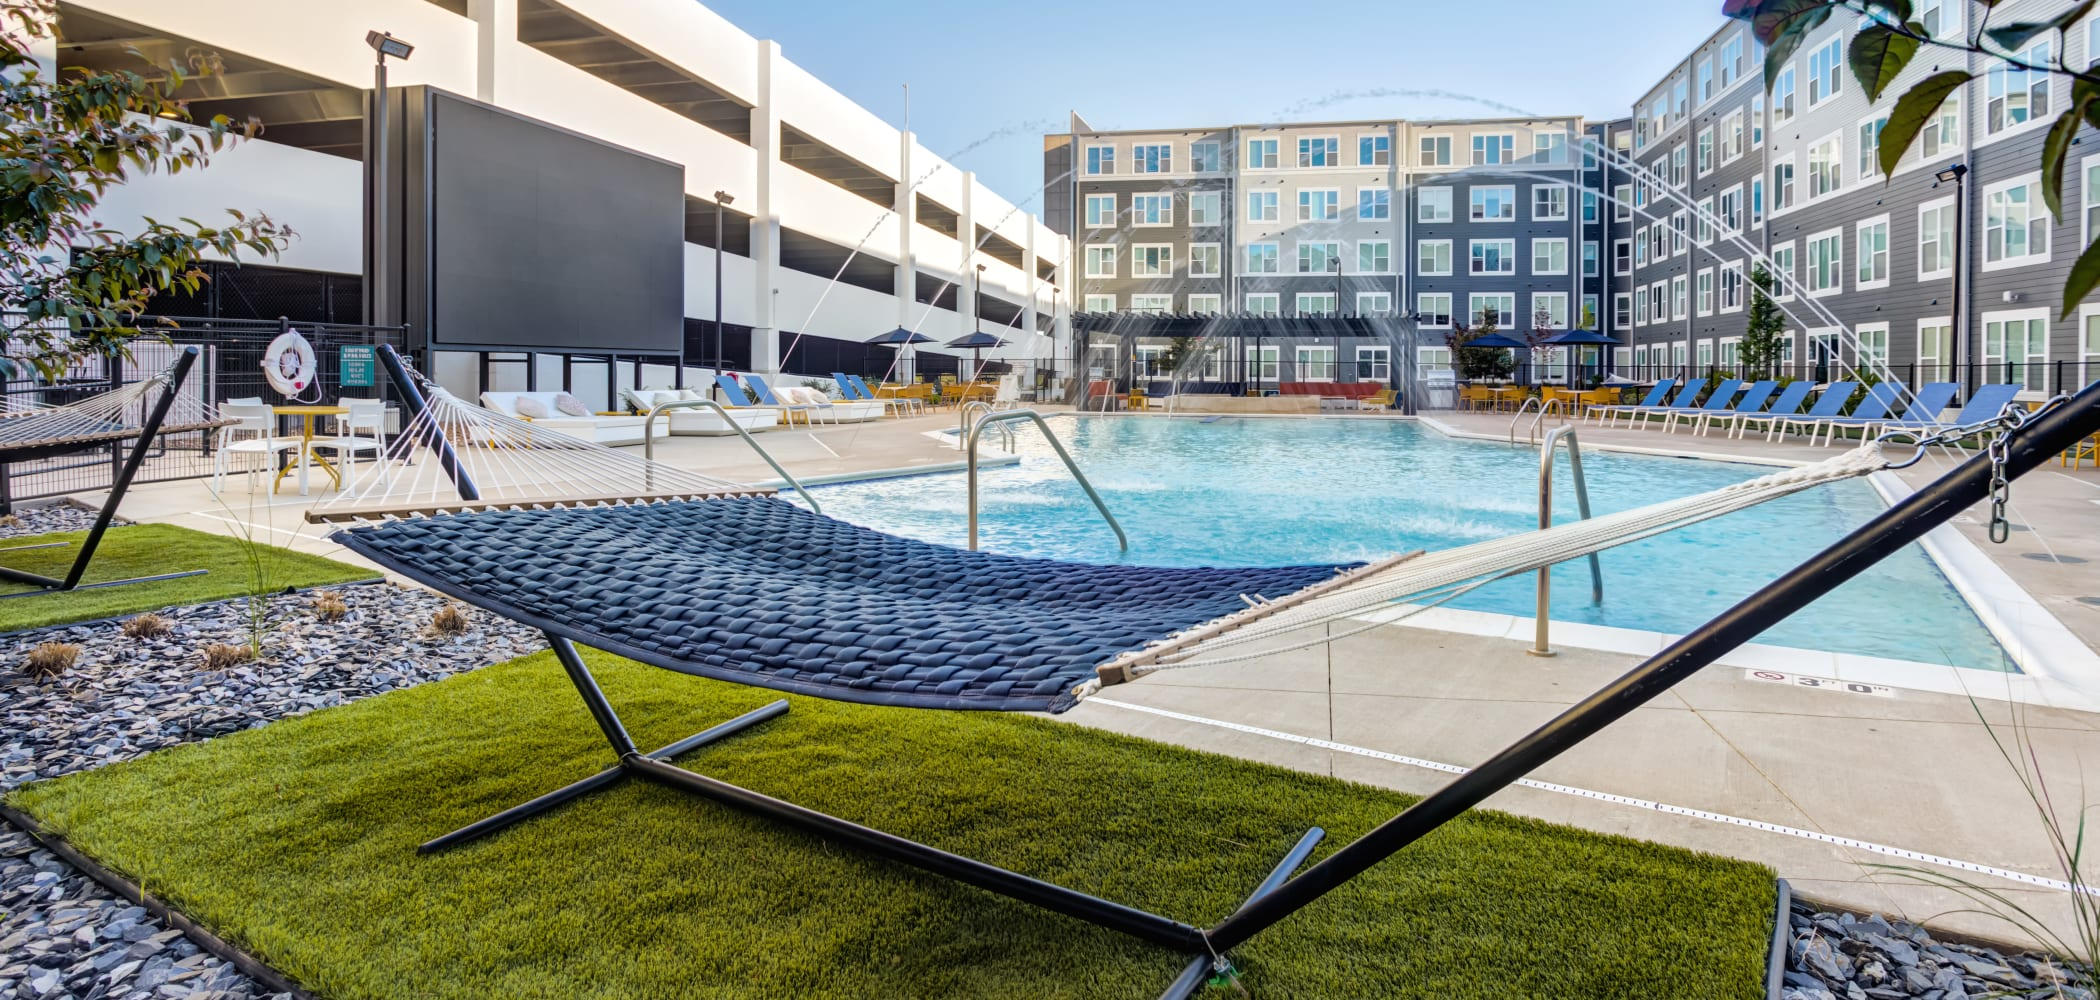 Enjoy Apartments with a Swimming Pool & Poolside Hammocks at LATITUDE at River Landing in Coralville, Iowa